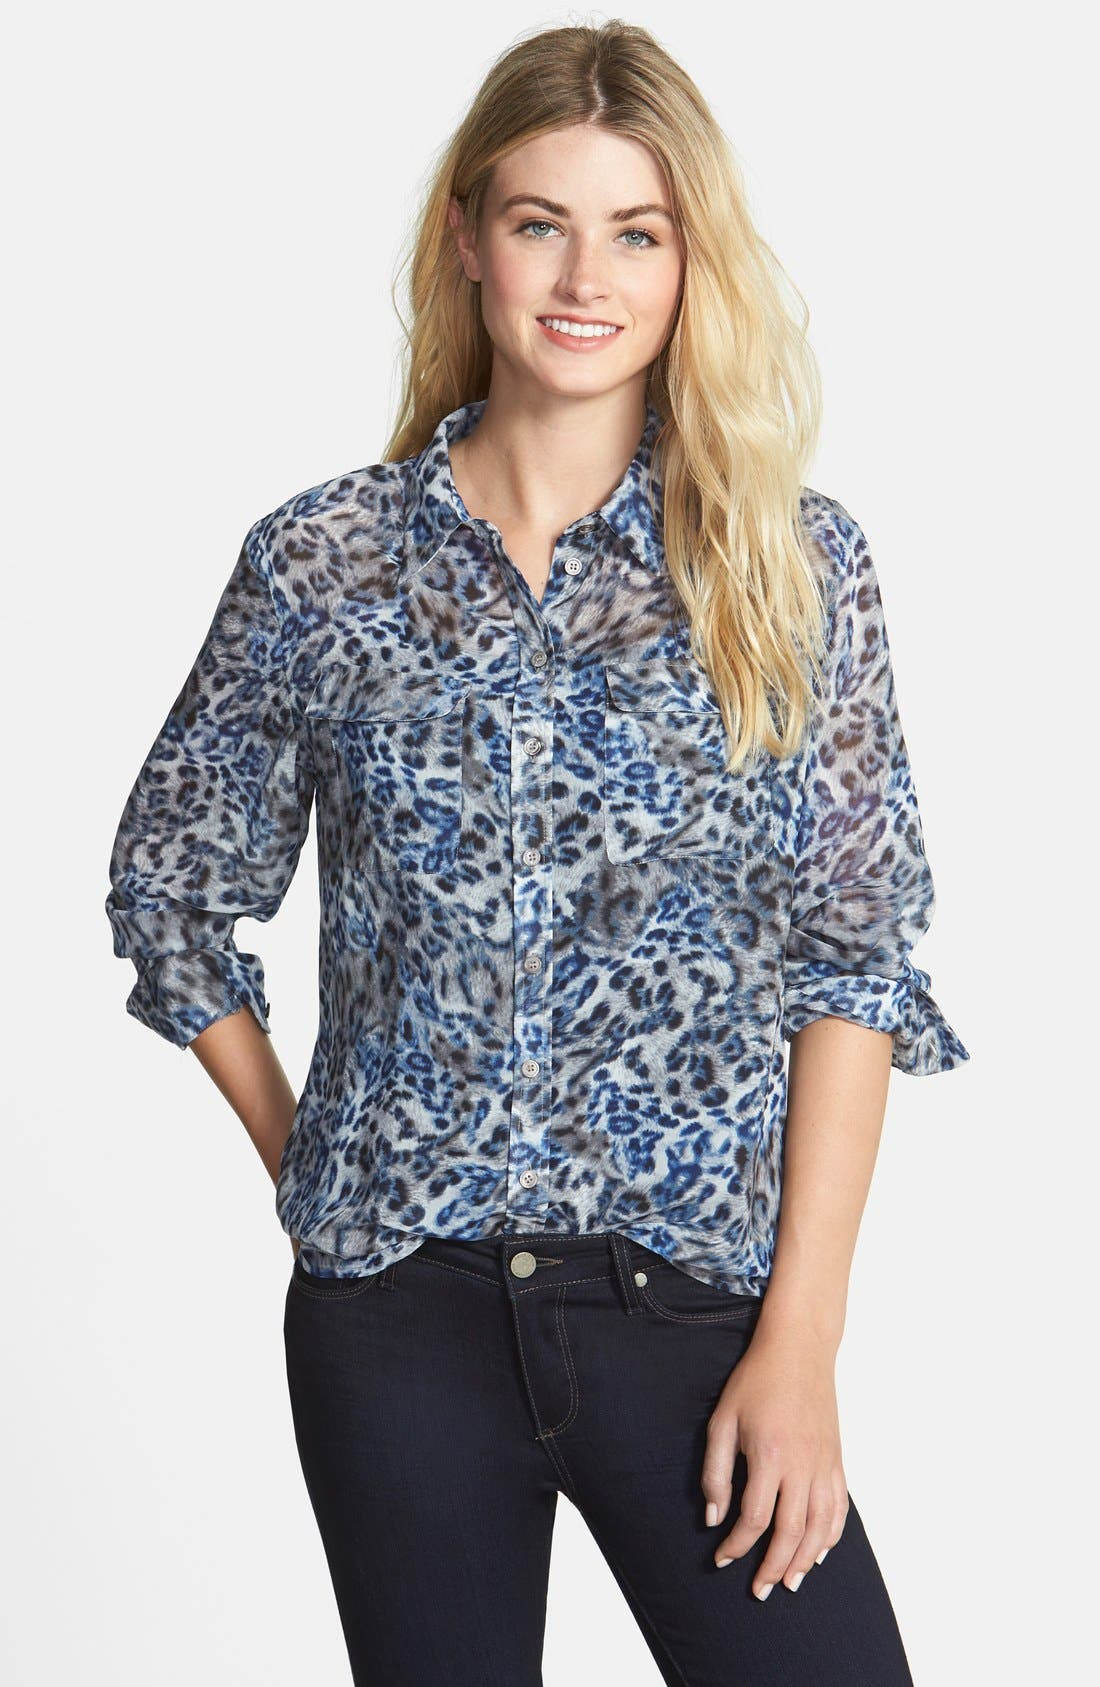 Alternate Image 1 Selected - Two by Vince Camuto Leopard Print Utility Blouse